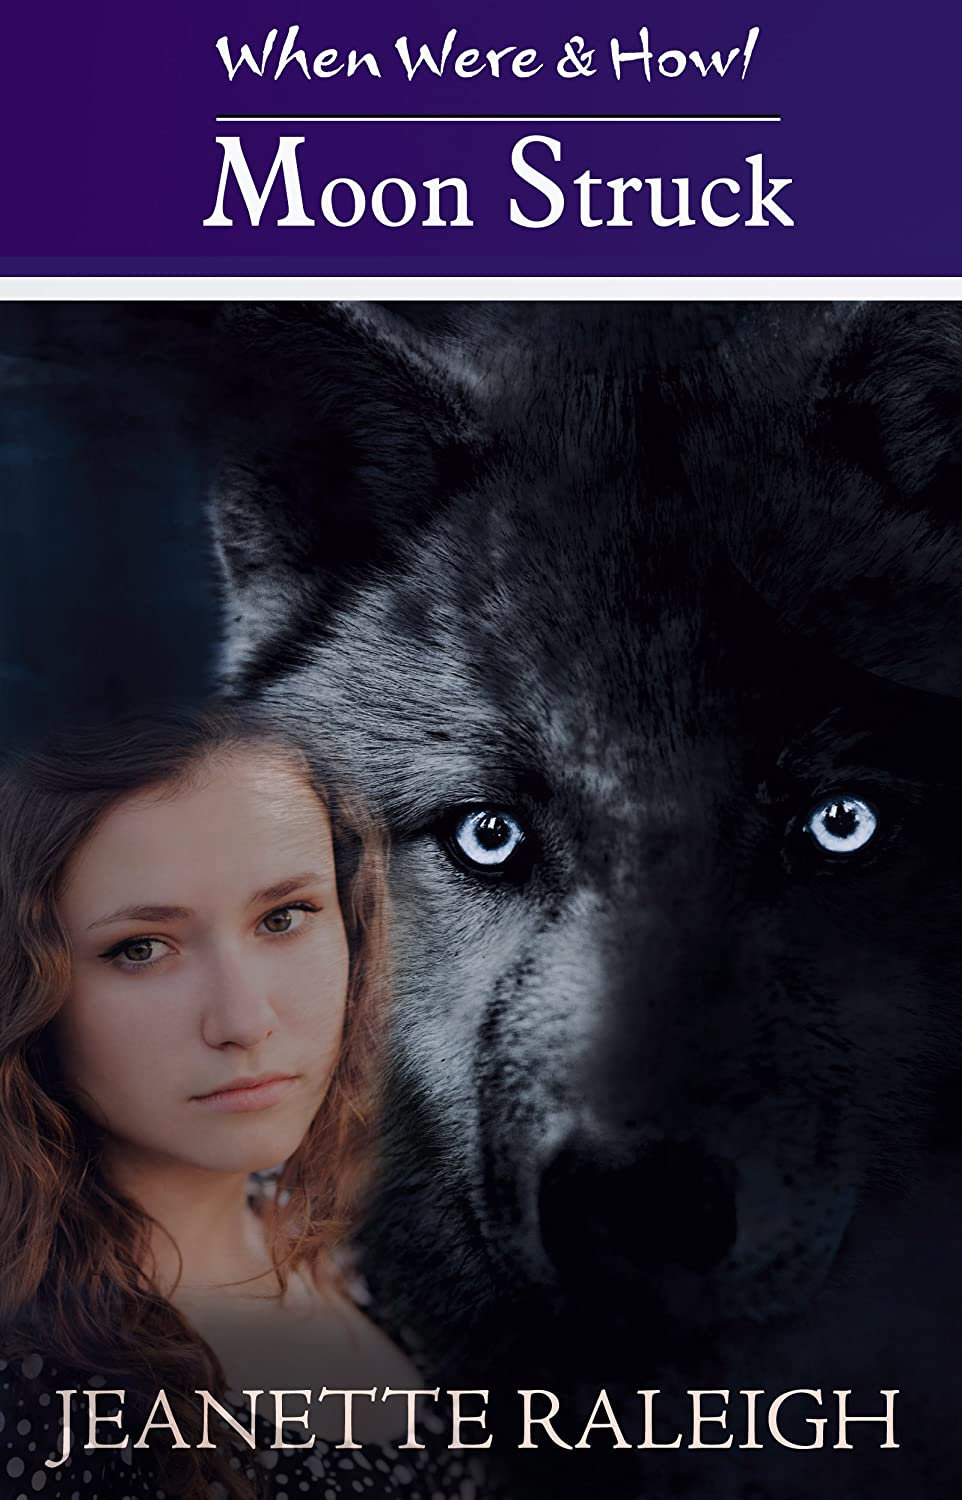 Moon Struck: Book 1 (When, Were, and Howl) by Jeanette Raleigh